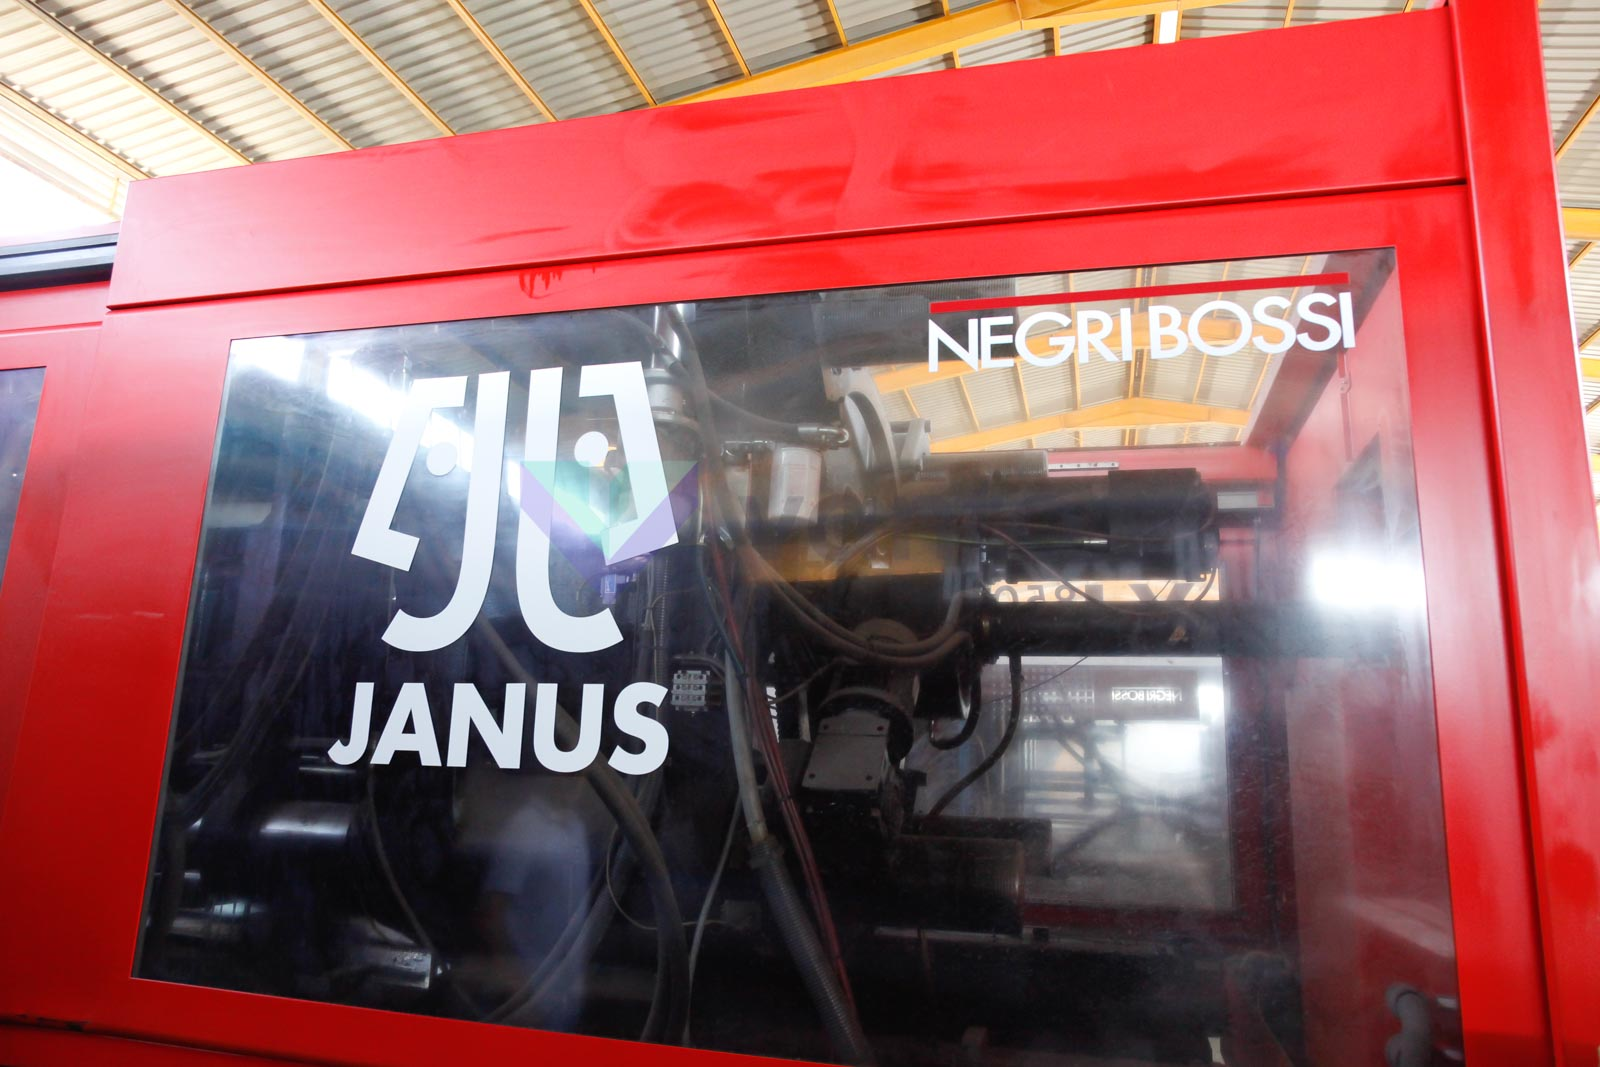 NEGRI BOSSI JANUS 8500H - 6700 850t injection molding machine (2009) id4502